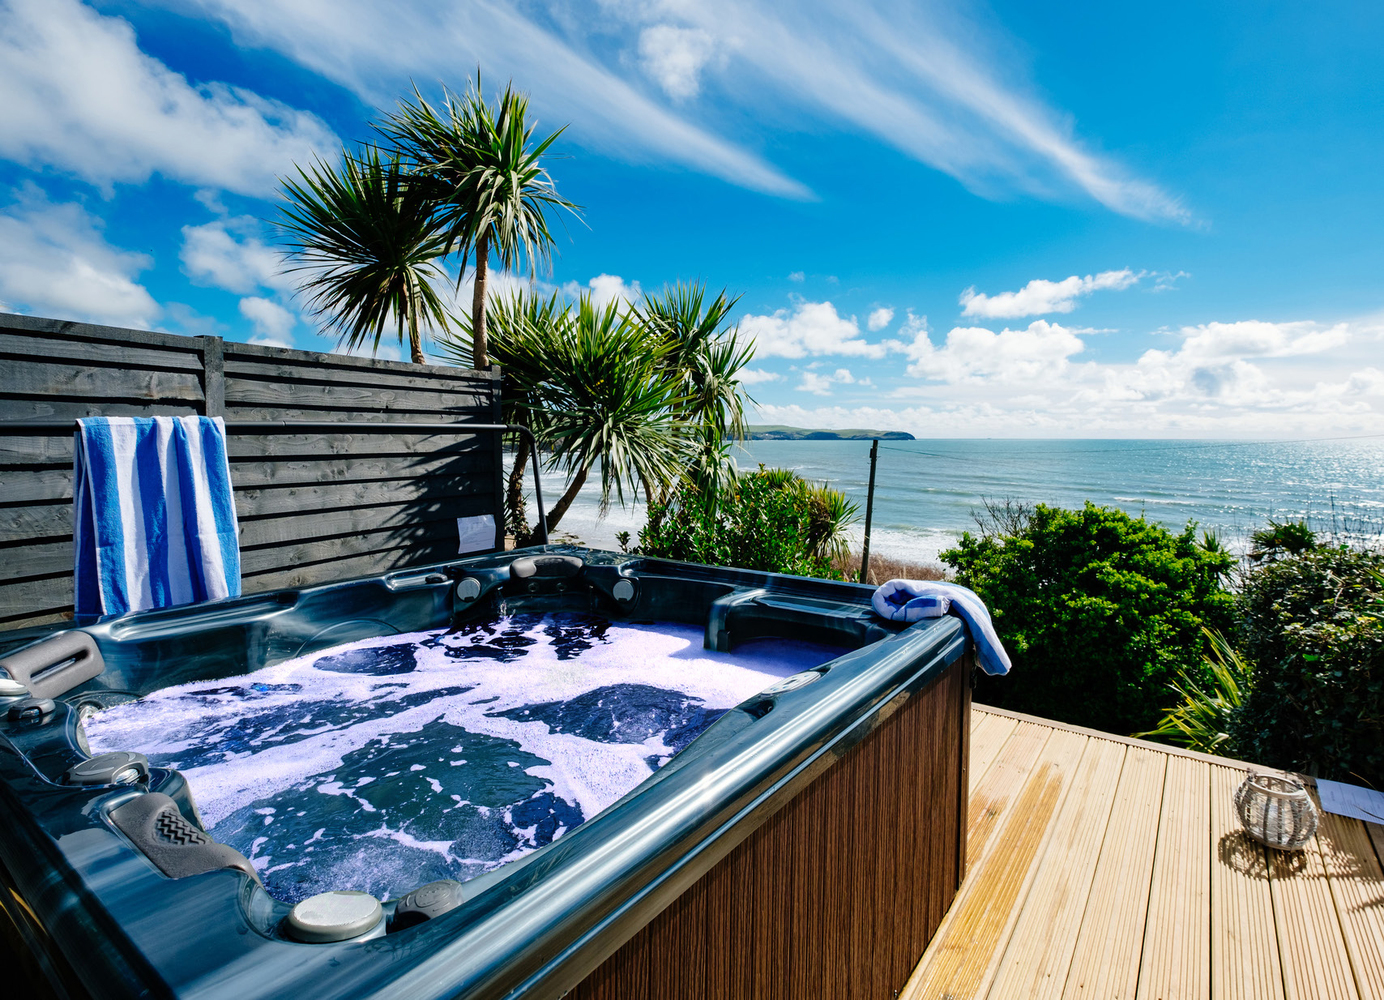 Home Hot Tubs Swim Spas Swimming Pools And Tub Servicing Jacuzzi Wiring Instructions